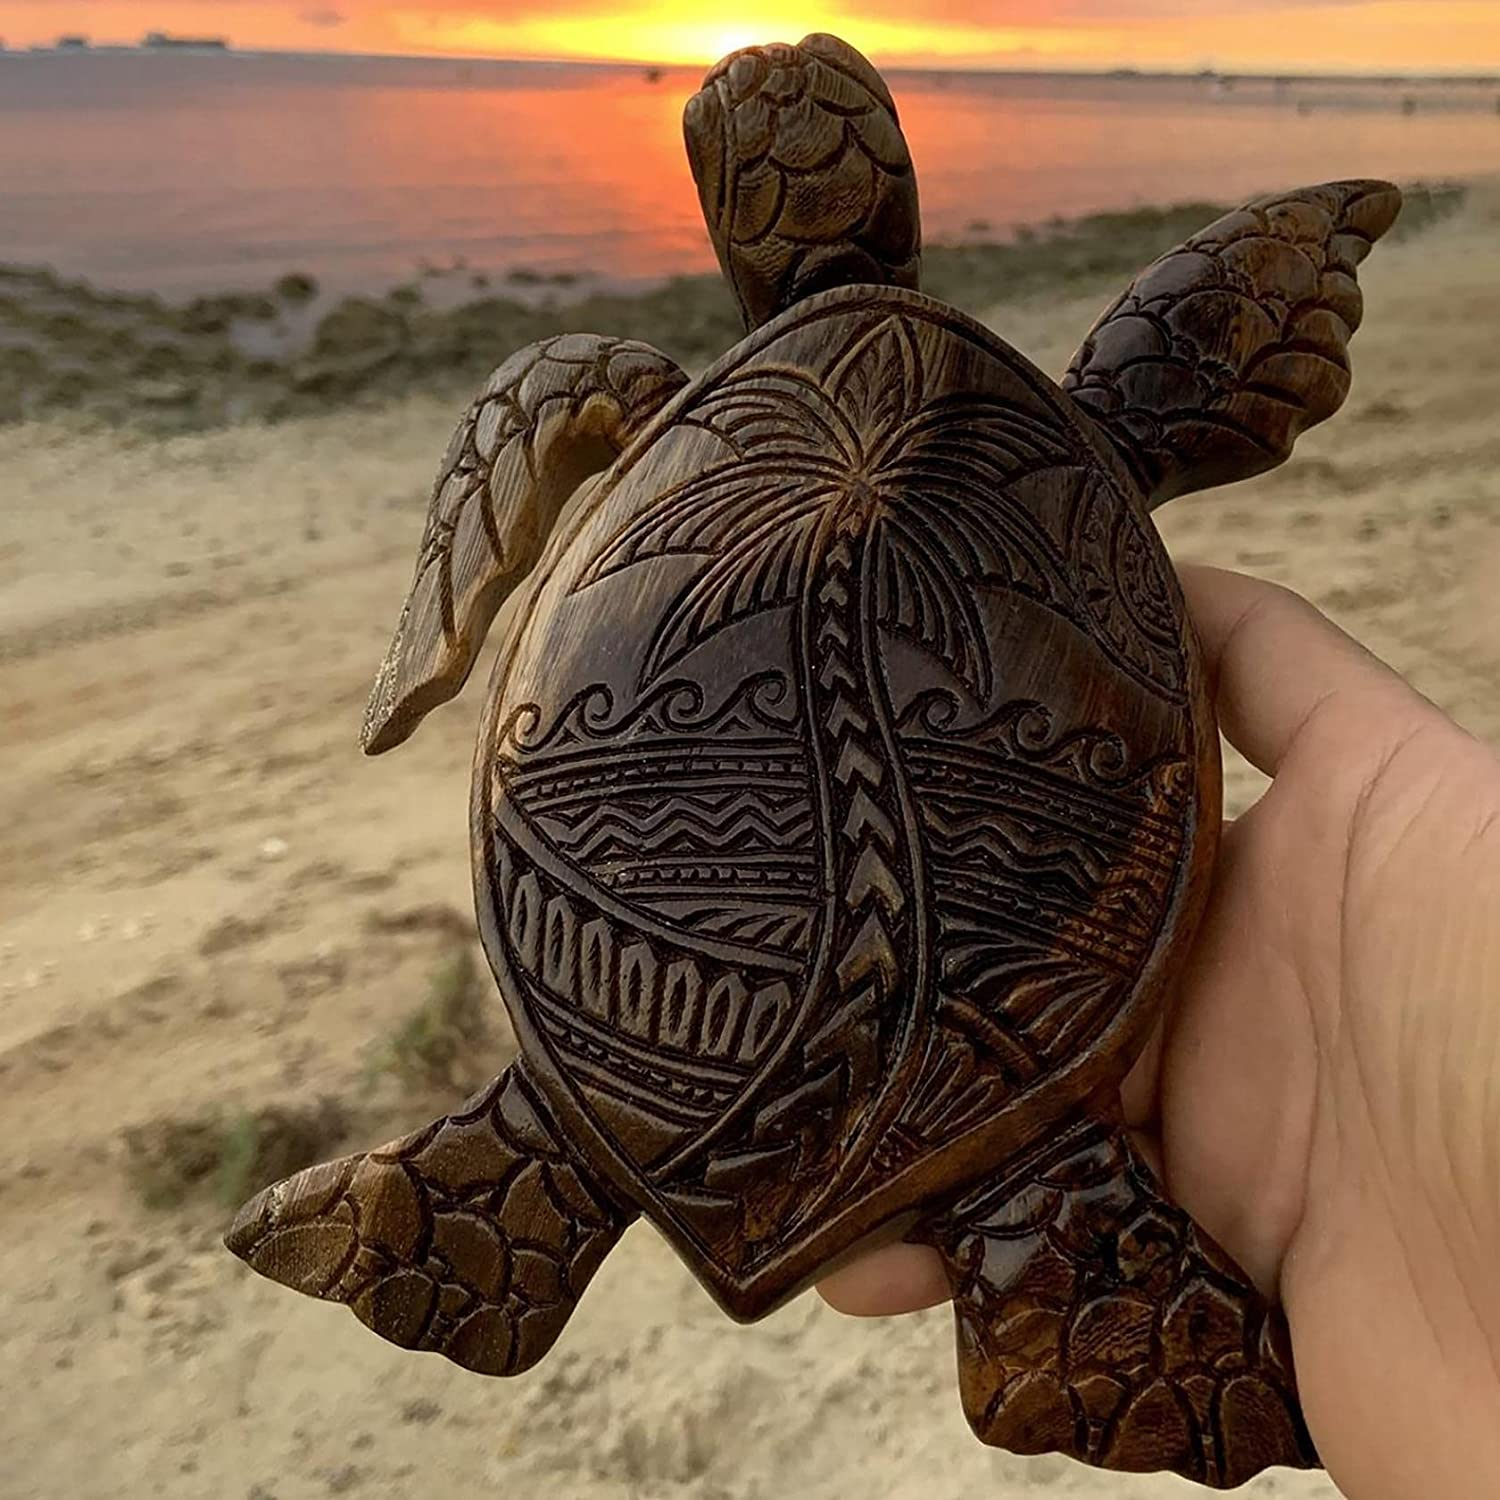 Turtle WoodCarving Hawaiian Turtles Wooden Hand Carved Turtle Tortoise Statue Seaside Tropical Nautical Ocean Coastal Decoration for Home Decor 5.9x4.3inches (A)